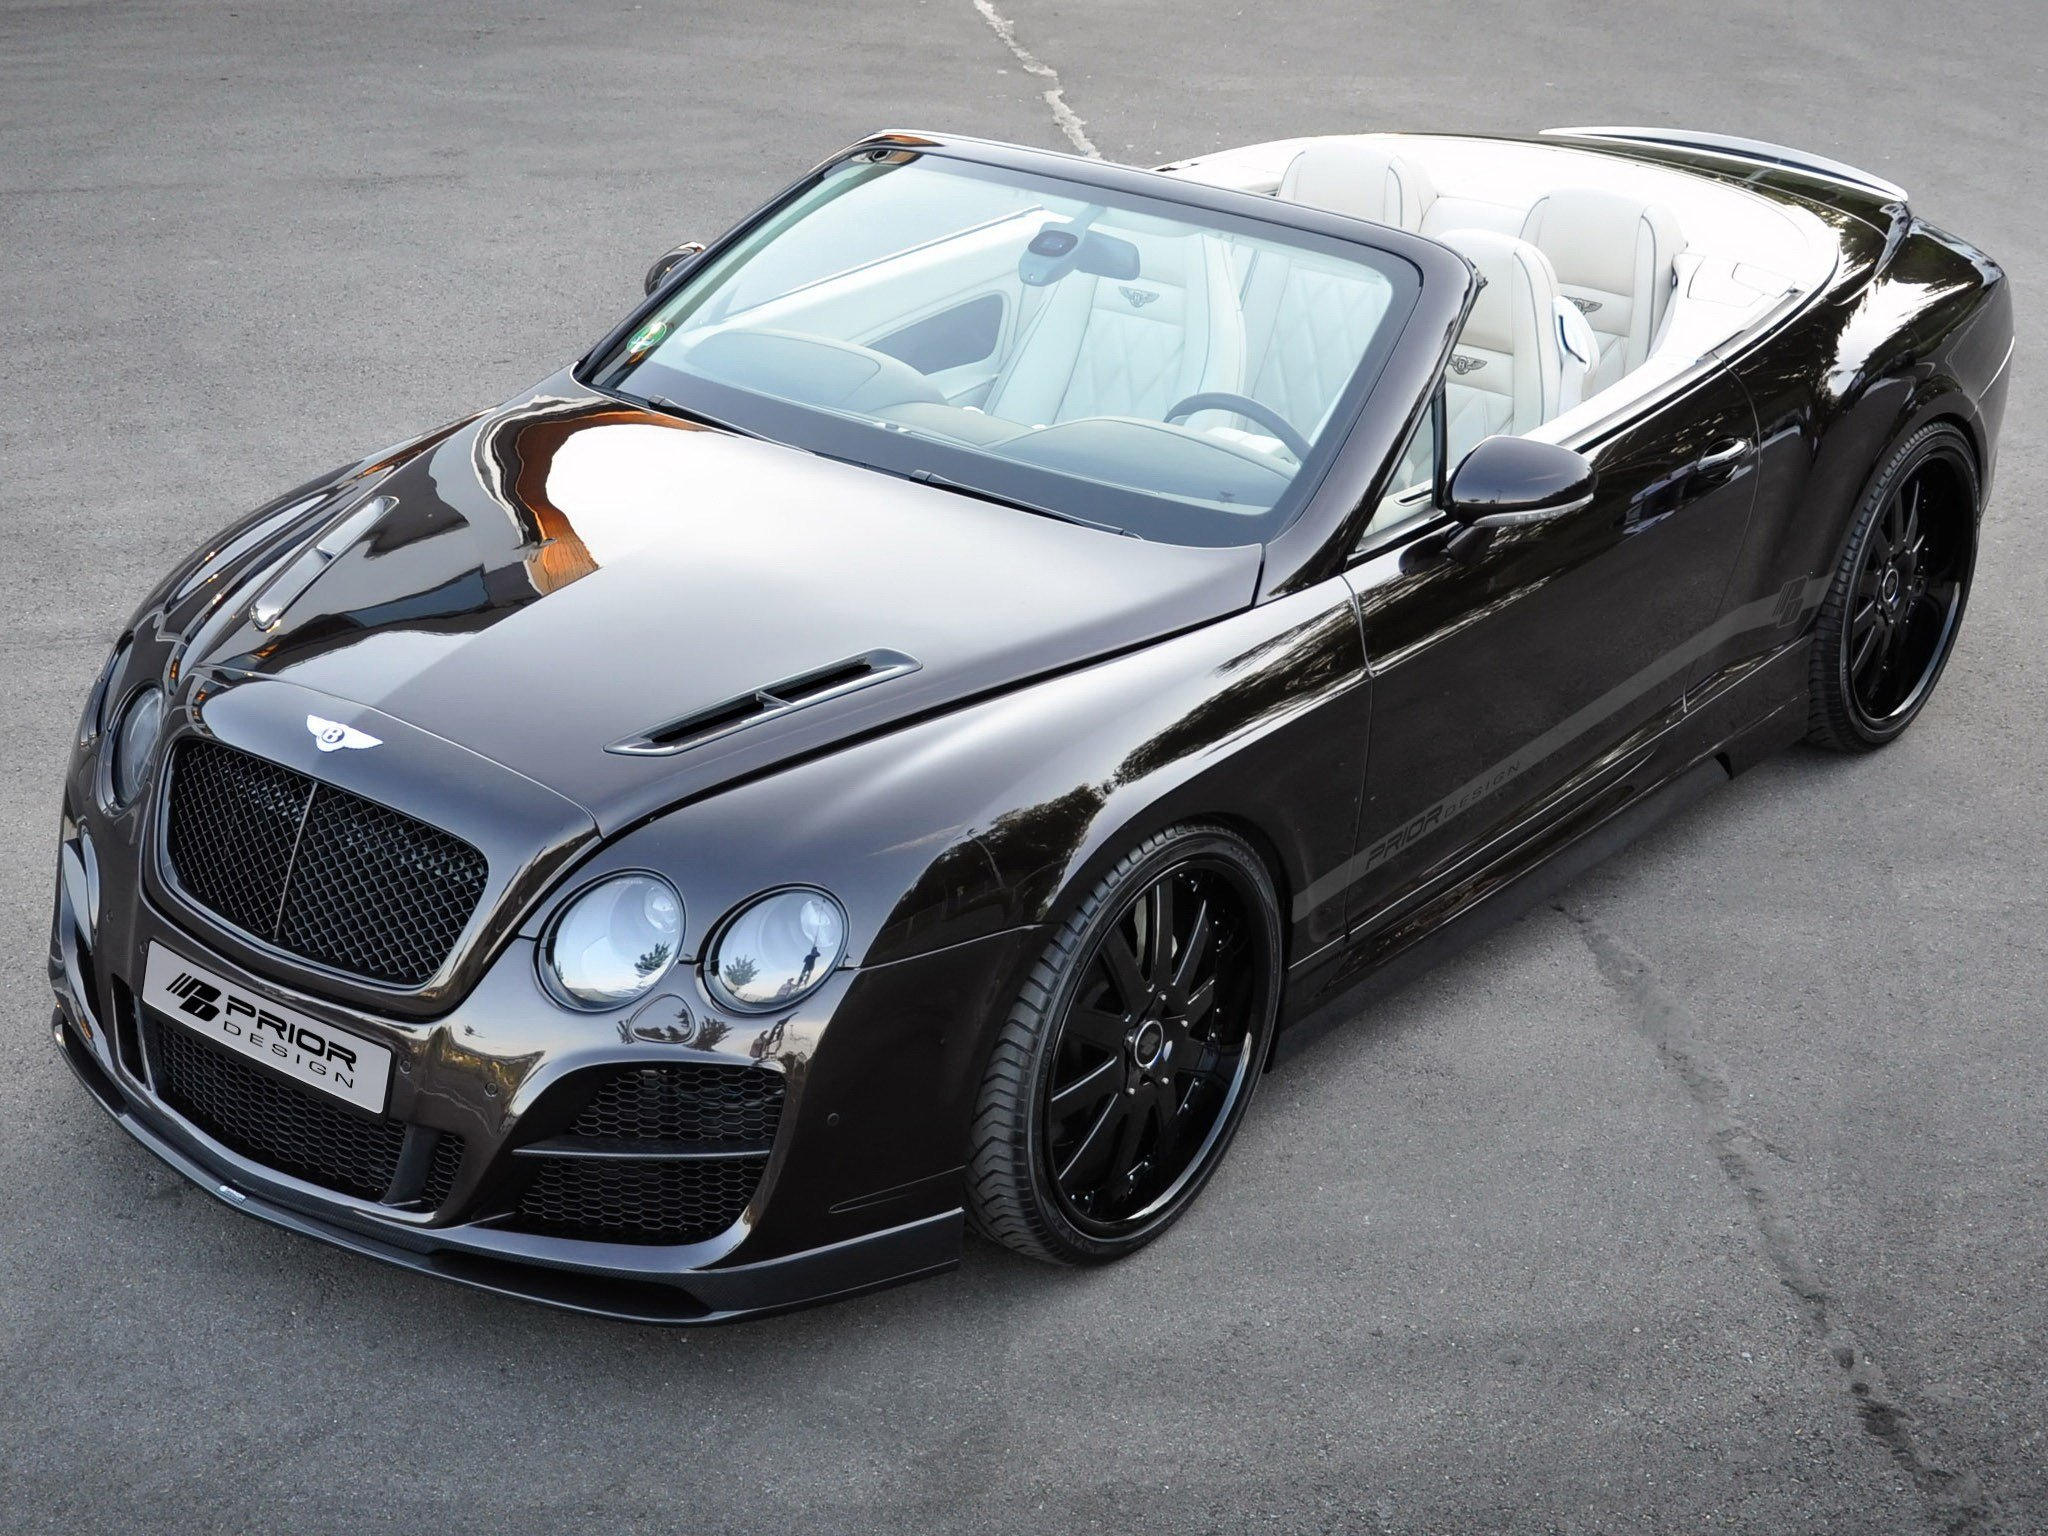 Latest Bentley Truck Hd Wallpapers Autocarwall Free Download